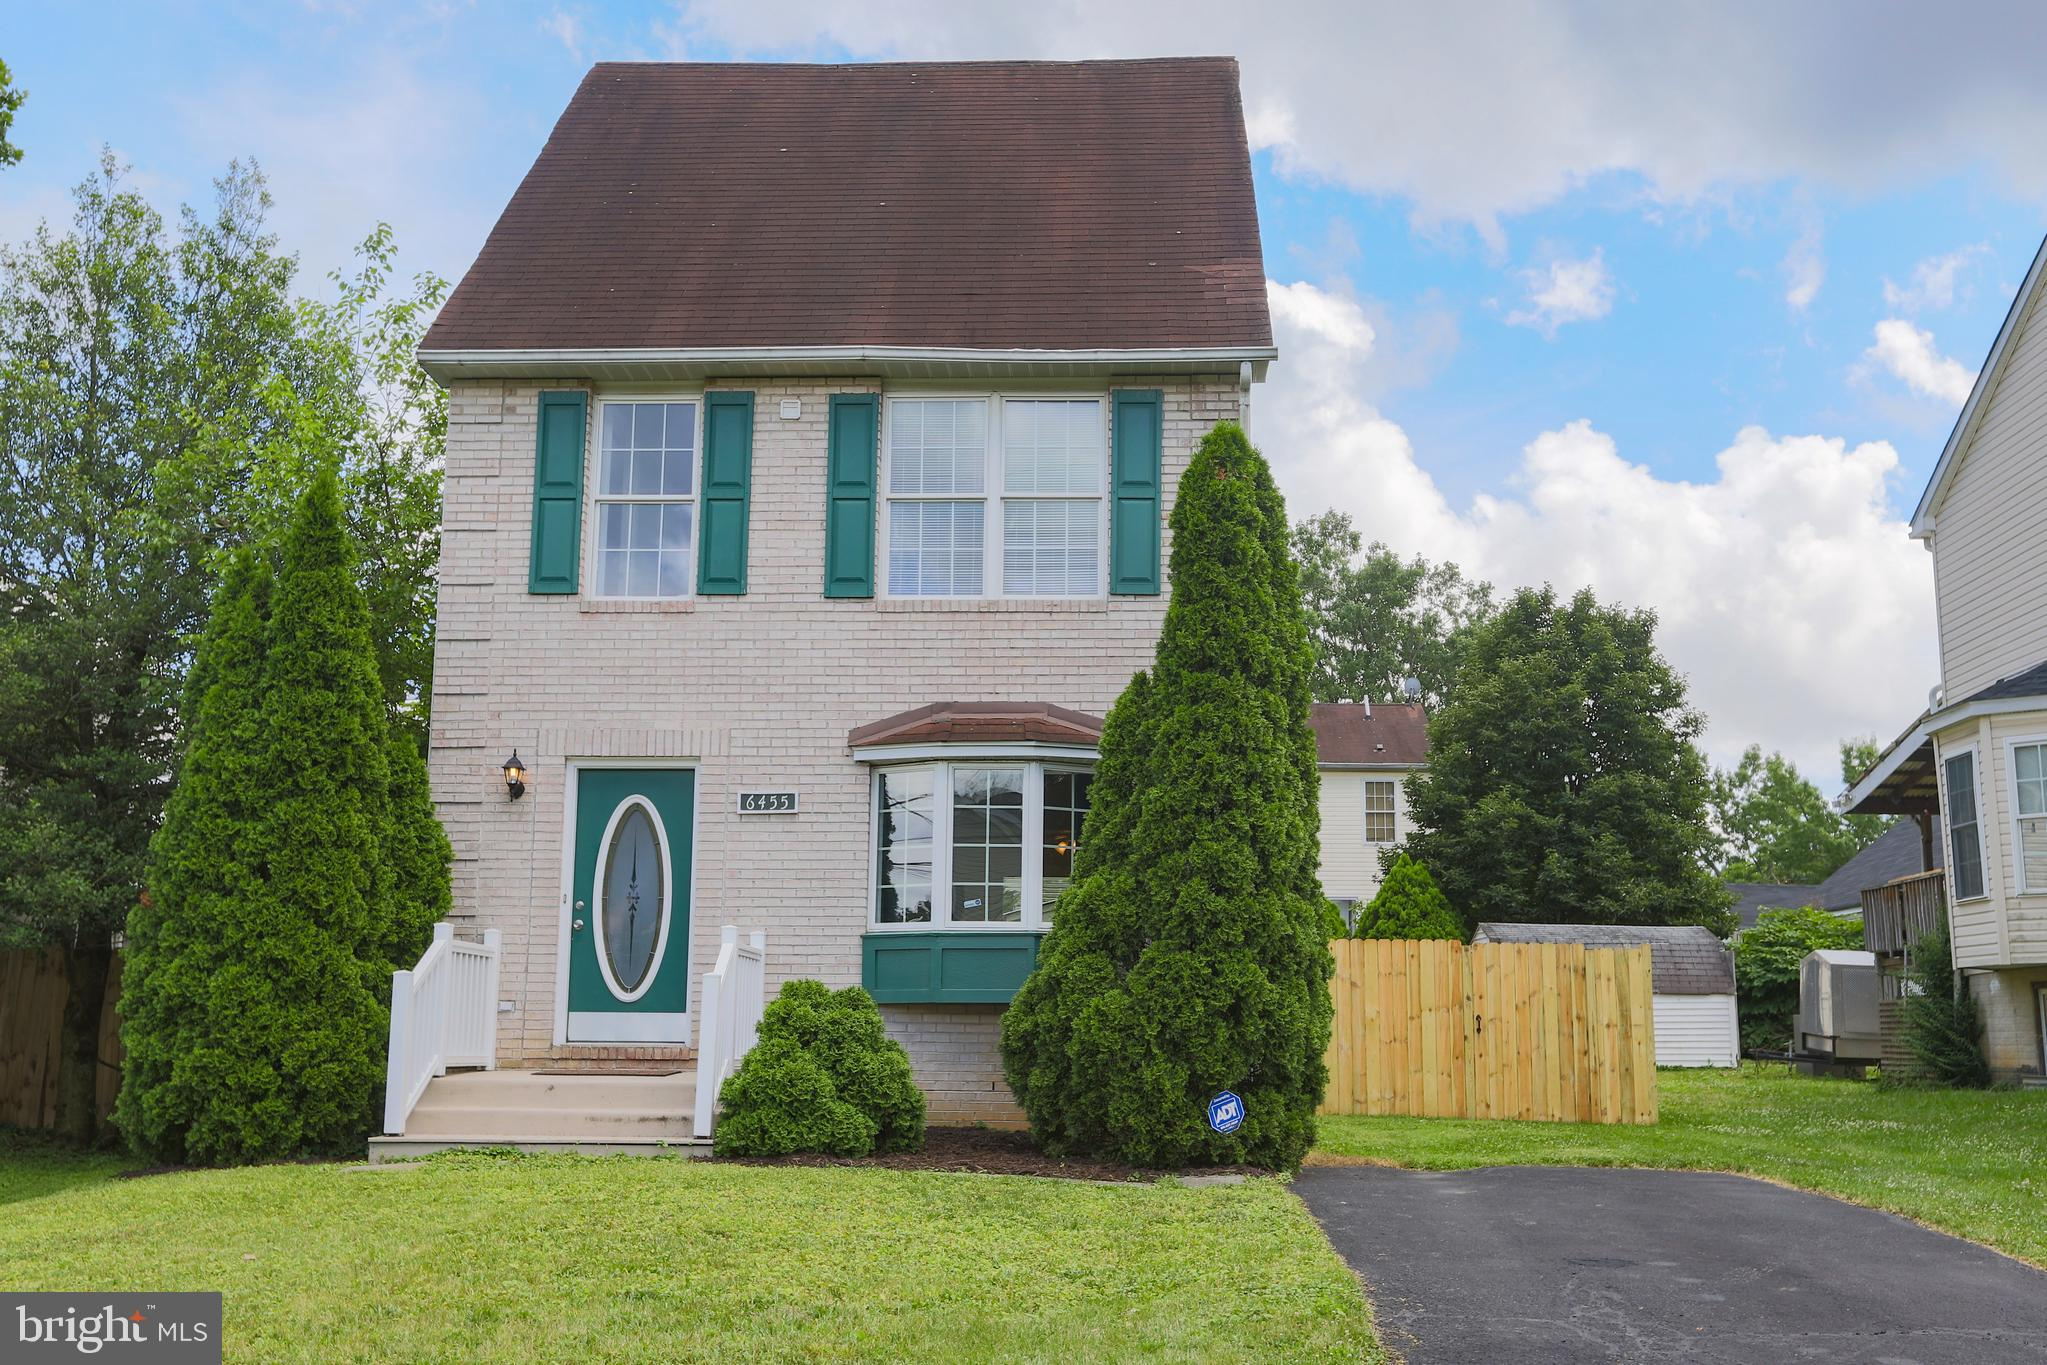 This one is a winner! Super spacious recently remodeled single family home in the popular Weyanoke neighborhood, hardwood floors through out and brand new stainless appliances. New privacy fence and a walk out basement with in-law suite potential.